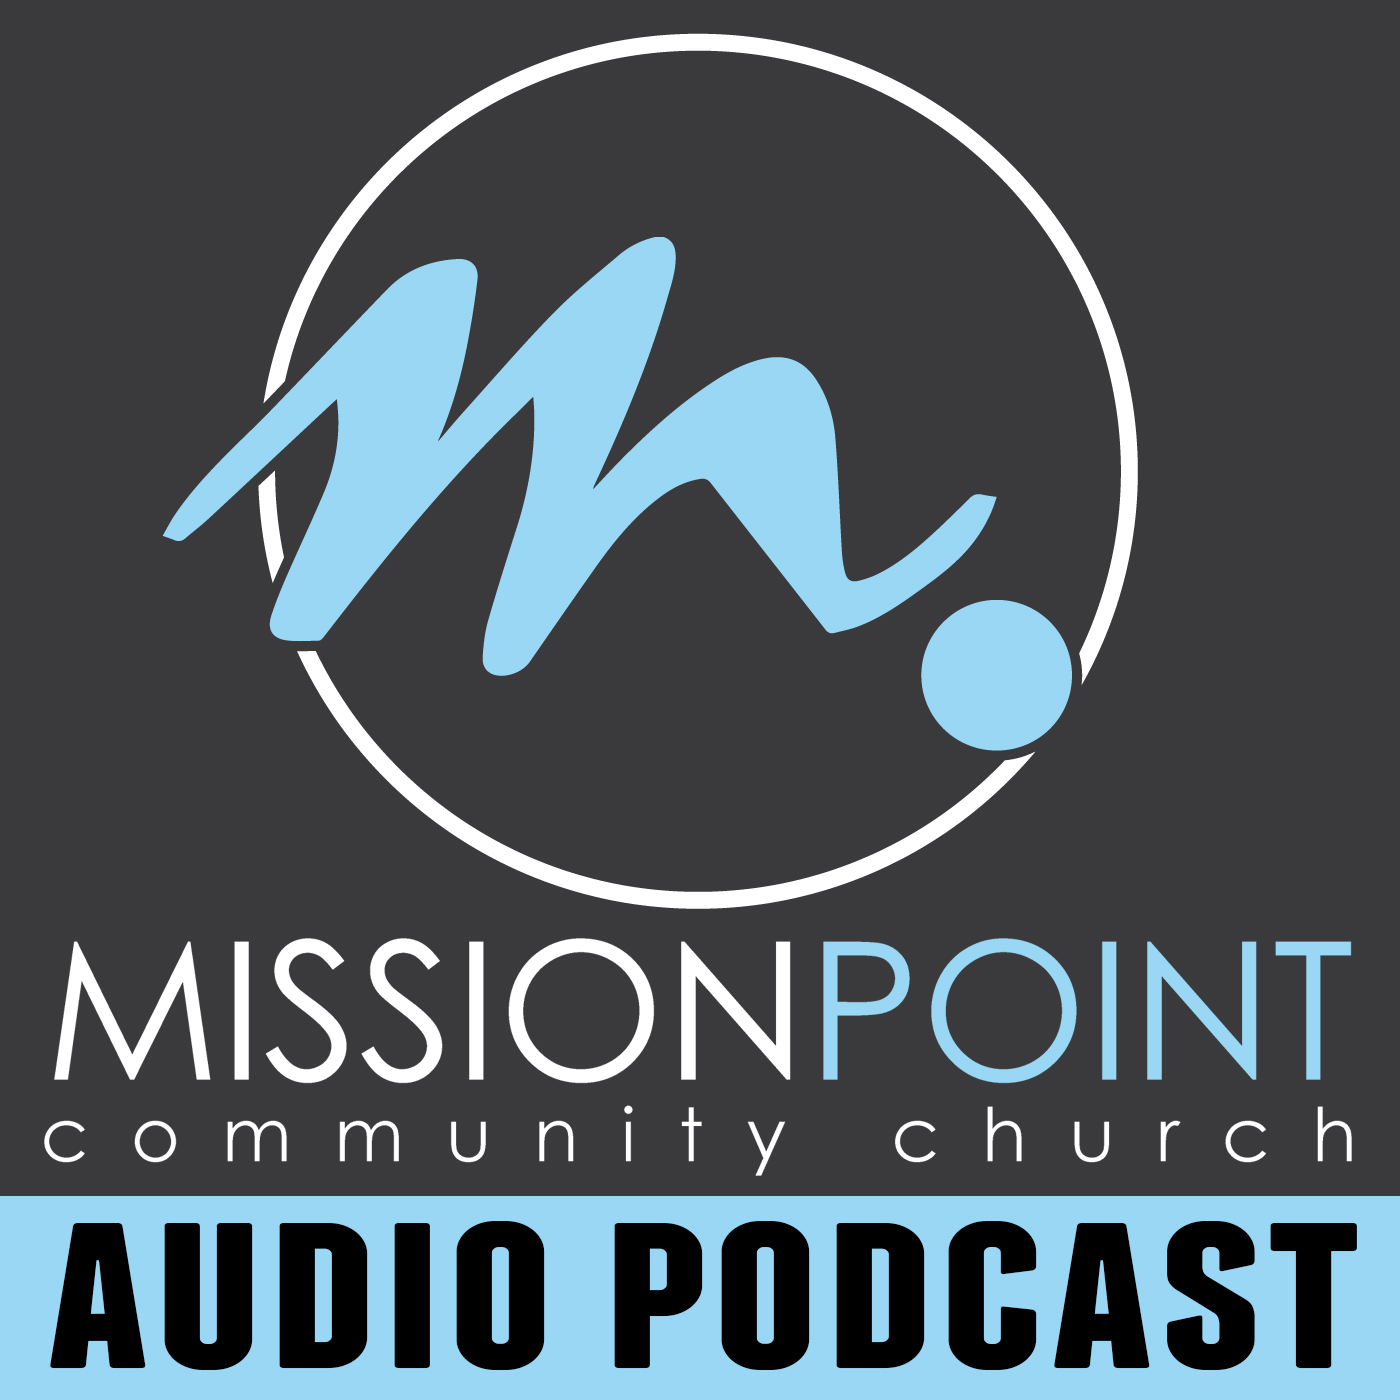 Mission Point Community Church